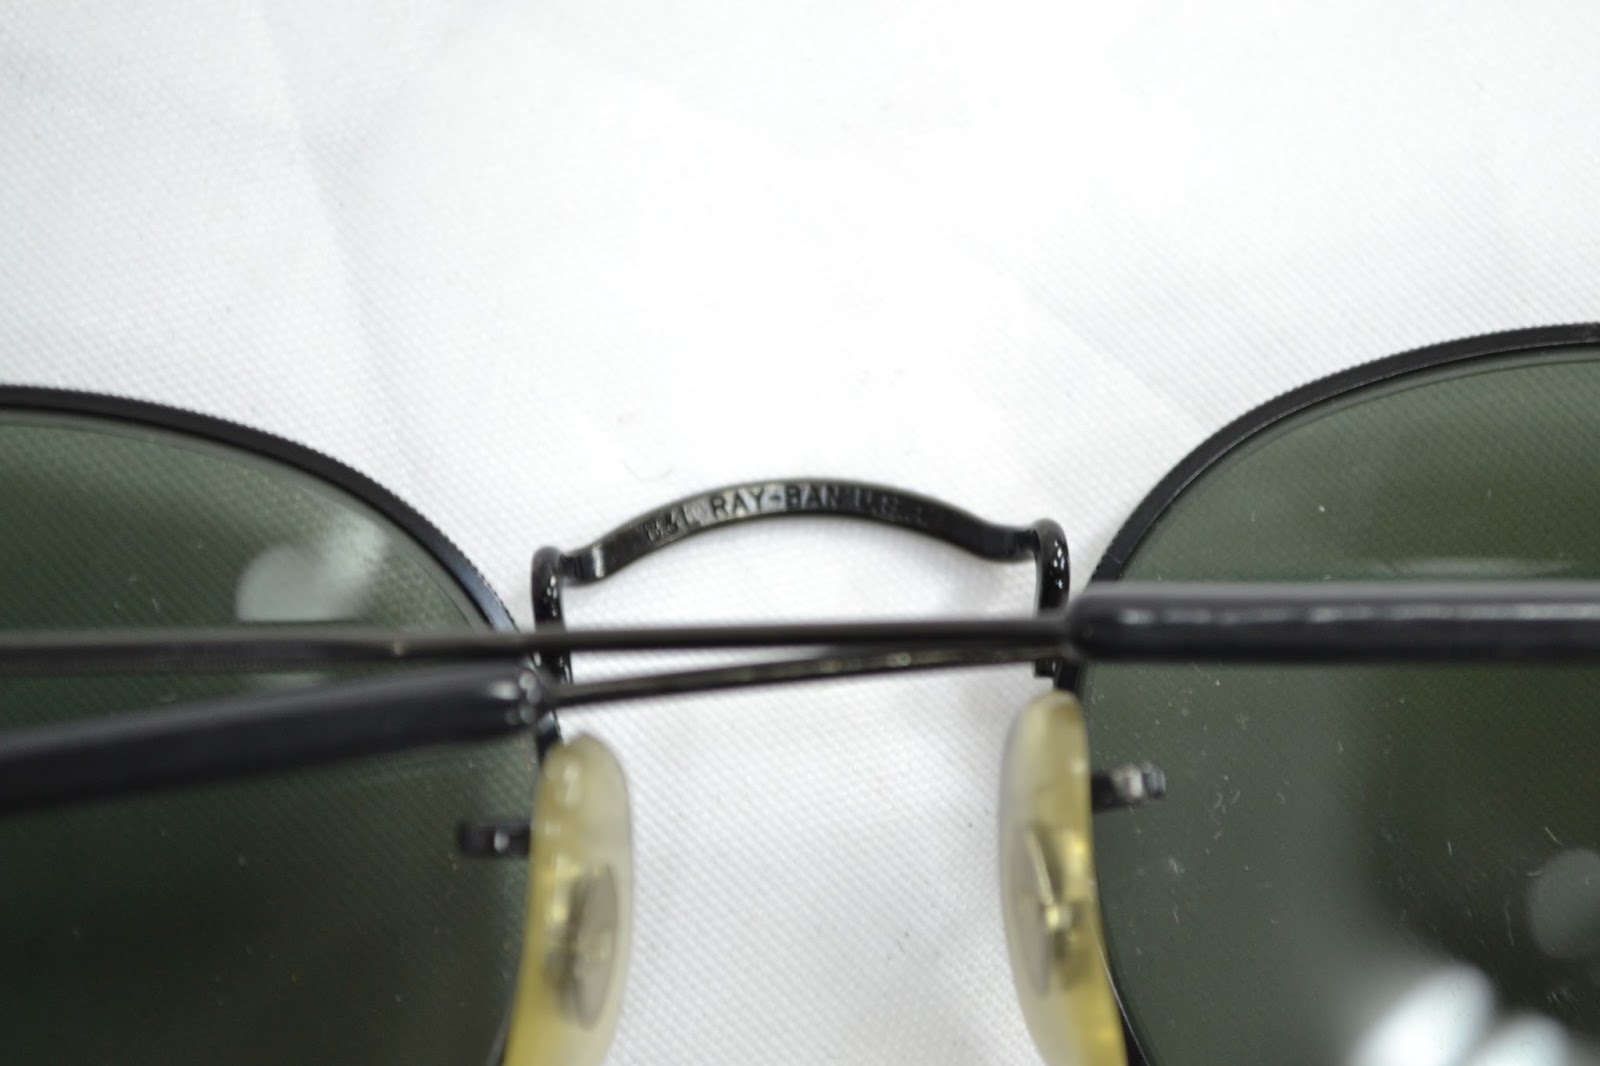 fb4ca28ce87 Vintage Ray Ban round metal W1547! condition  NOS  9 10 lens  G15 size 47mm.  Price  149€ For more details please inbox direct or email to  girishrd hotmail. ...